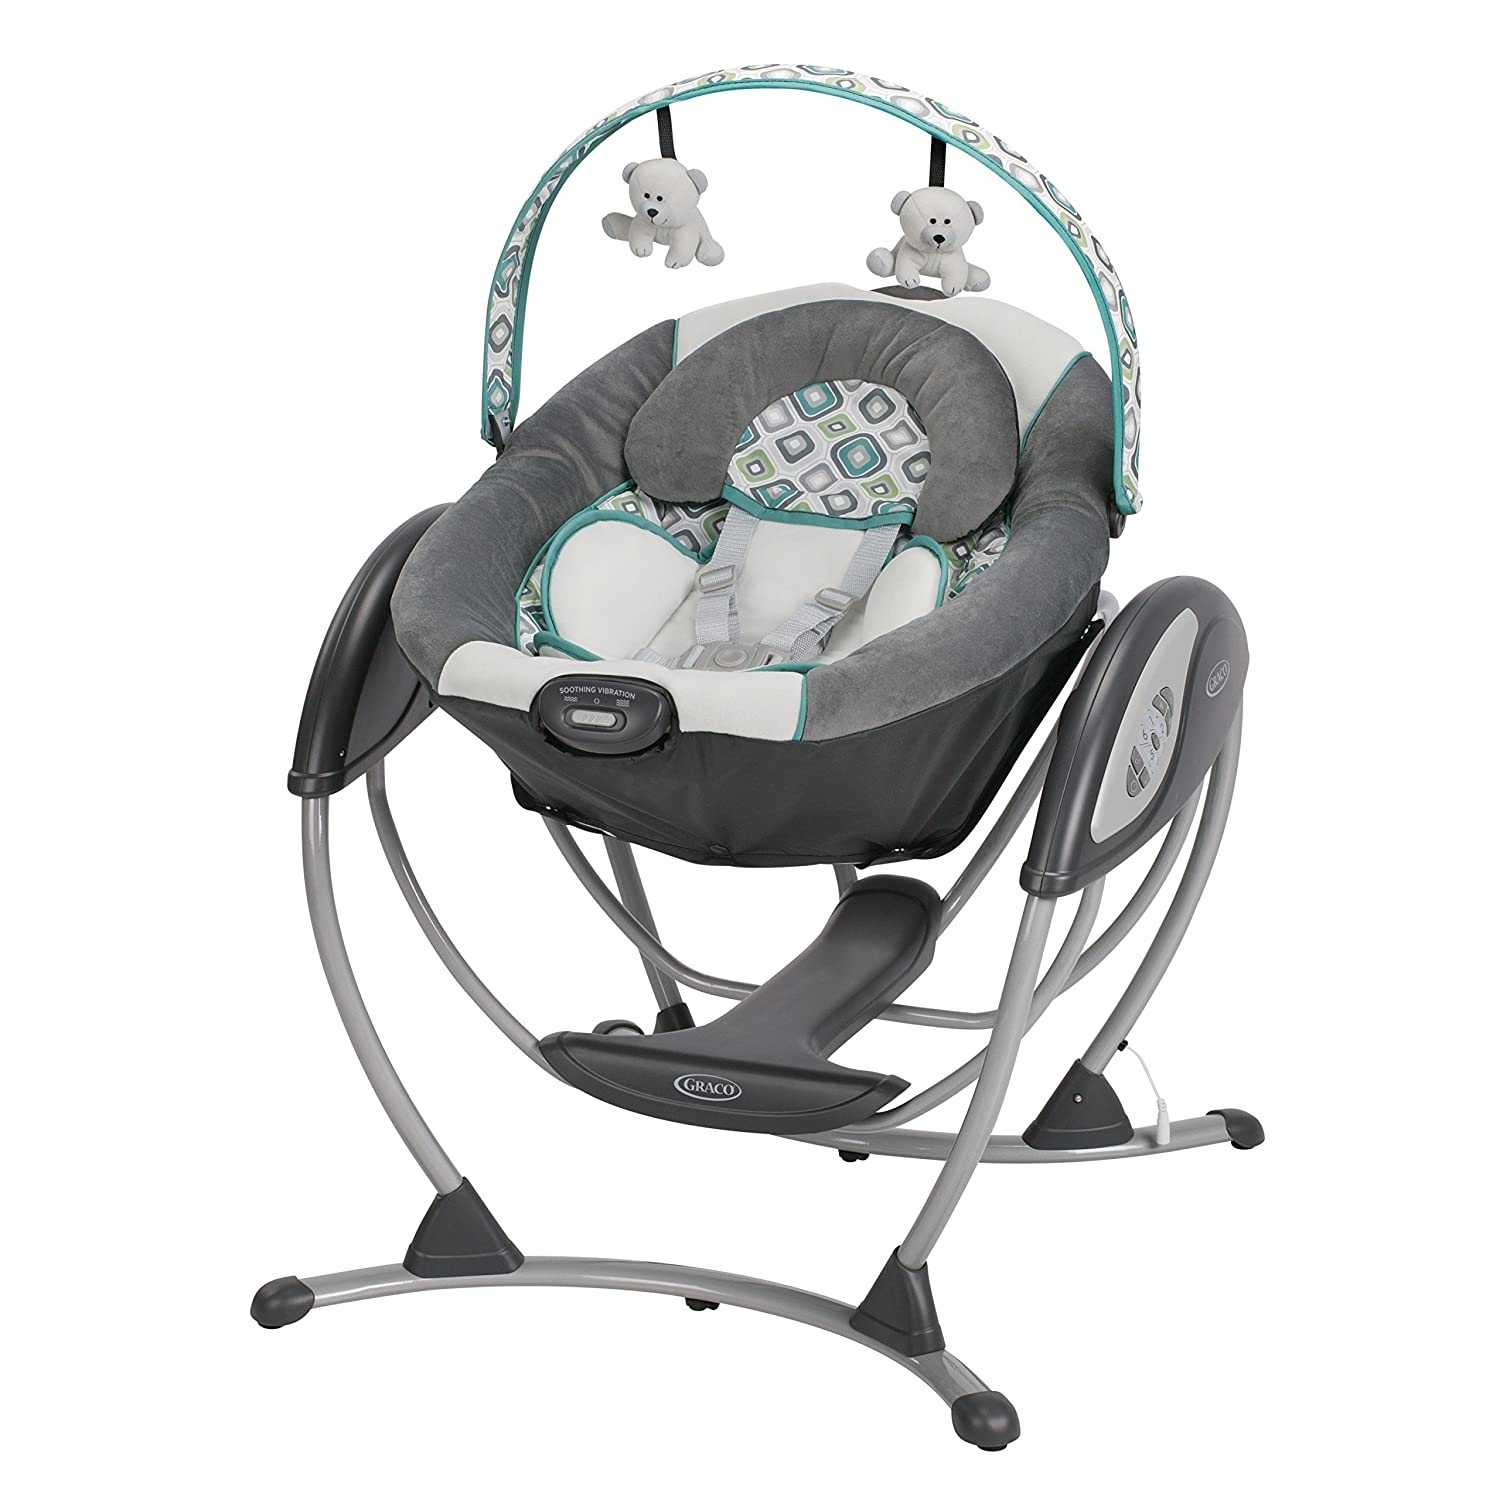 Graco Glider LX Baby Swing, Affinia